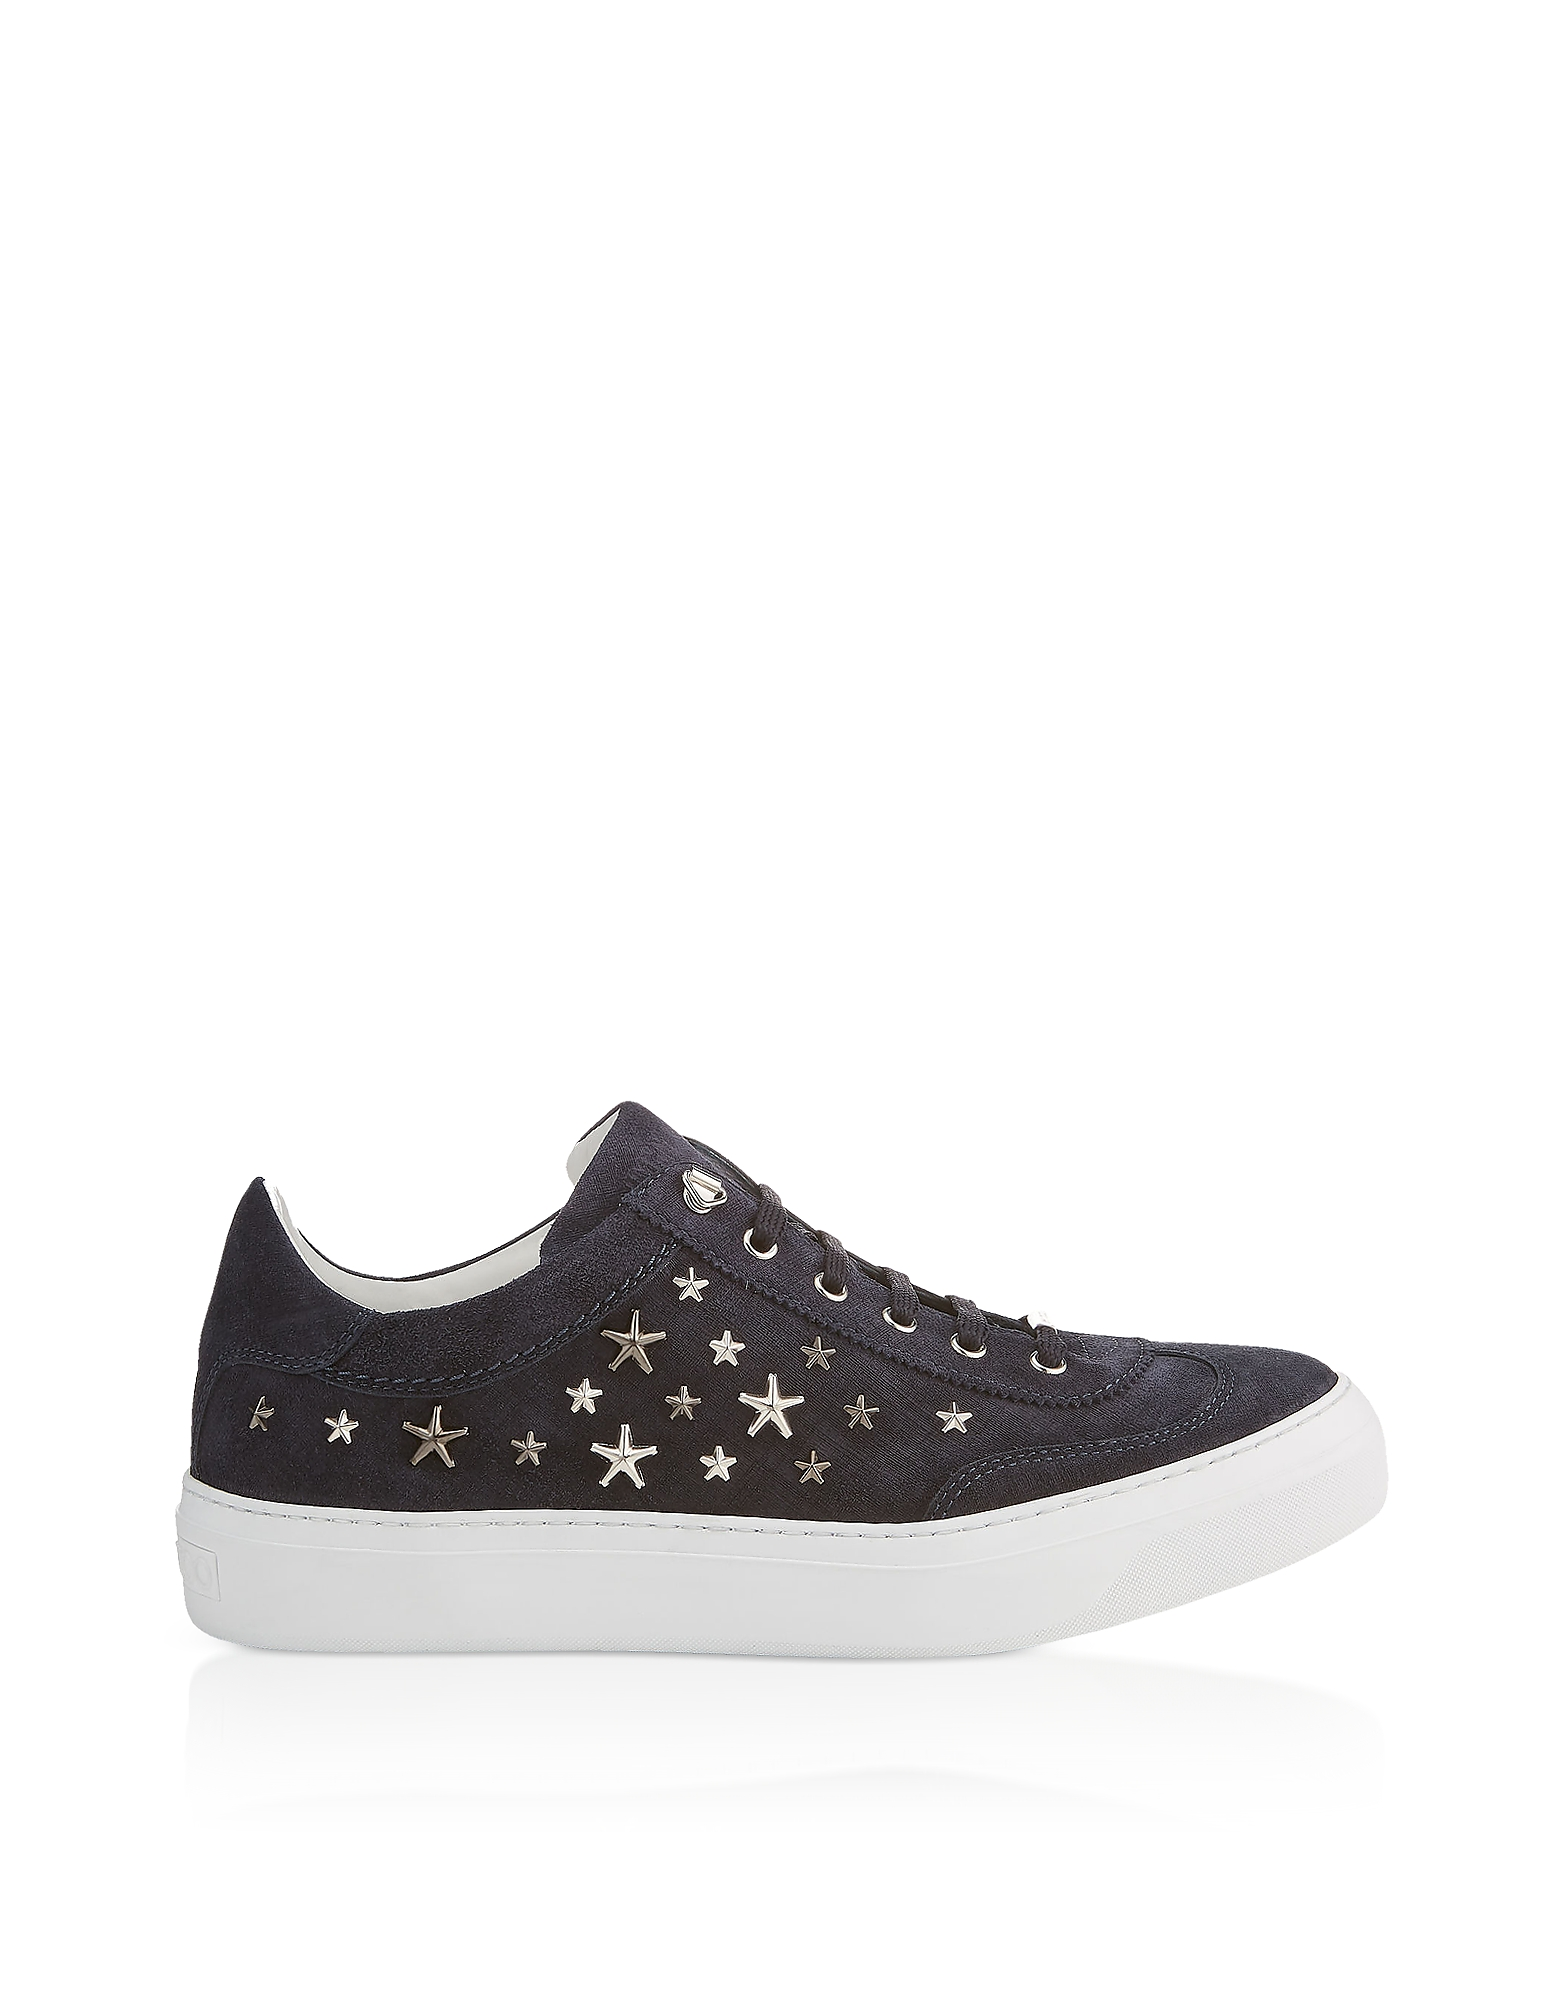 Jimmy Choo Shoes, Navy Blue Denim Suede Ace Low Top Trainers